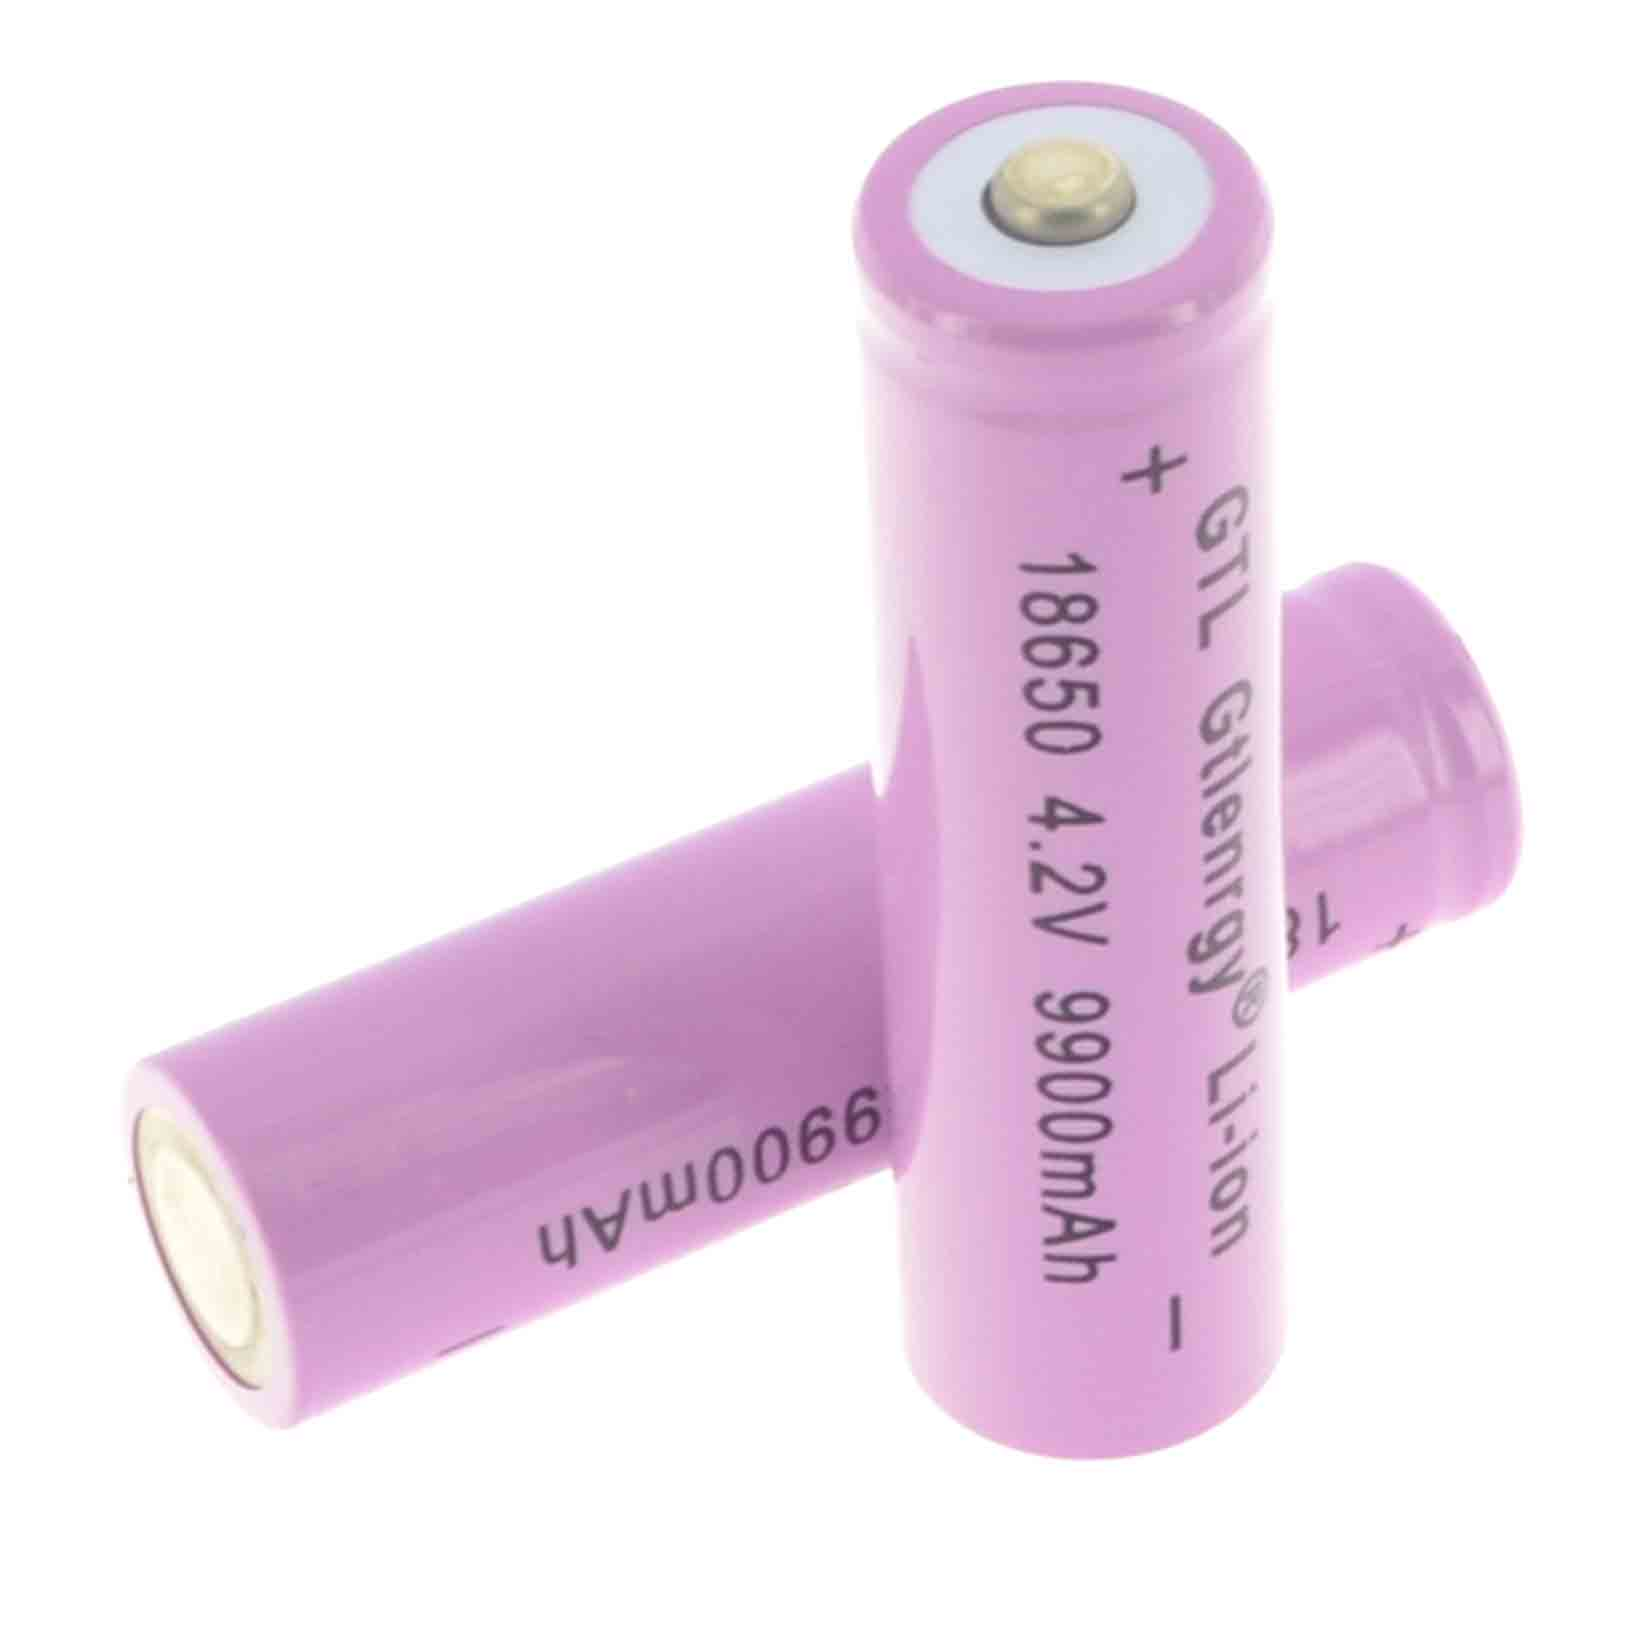 1/2/4/8/12/20pcs lithium 18650 Li-ion Battery Rechargeable 4.2V Battery 9900mAh lithium Battery For LED Flashlight Torch pink стоимость